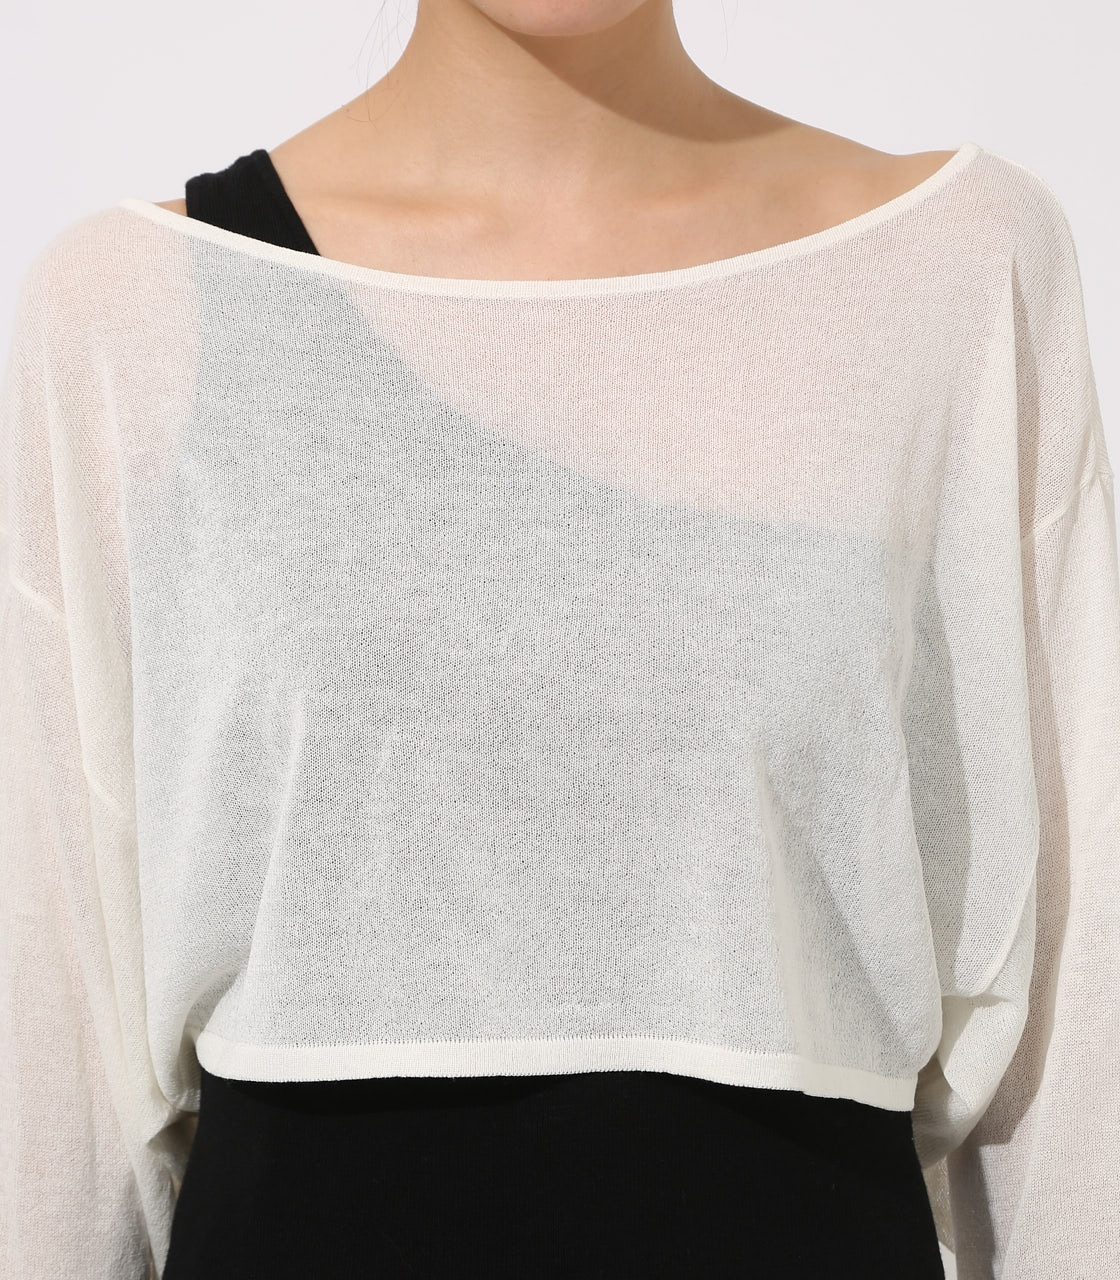 【AZUL BY MOUSSY】ONE-SHOULDER KNIT SET TOPS 詳細画像 O/WHT 8